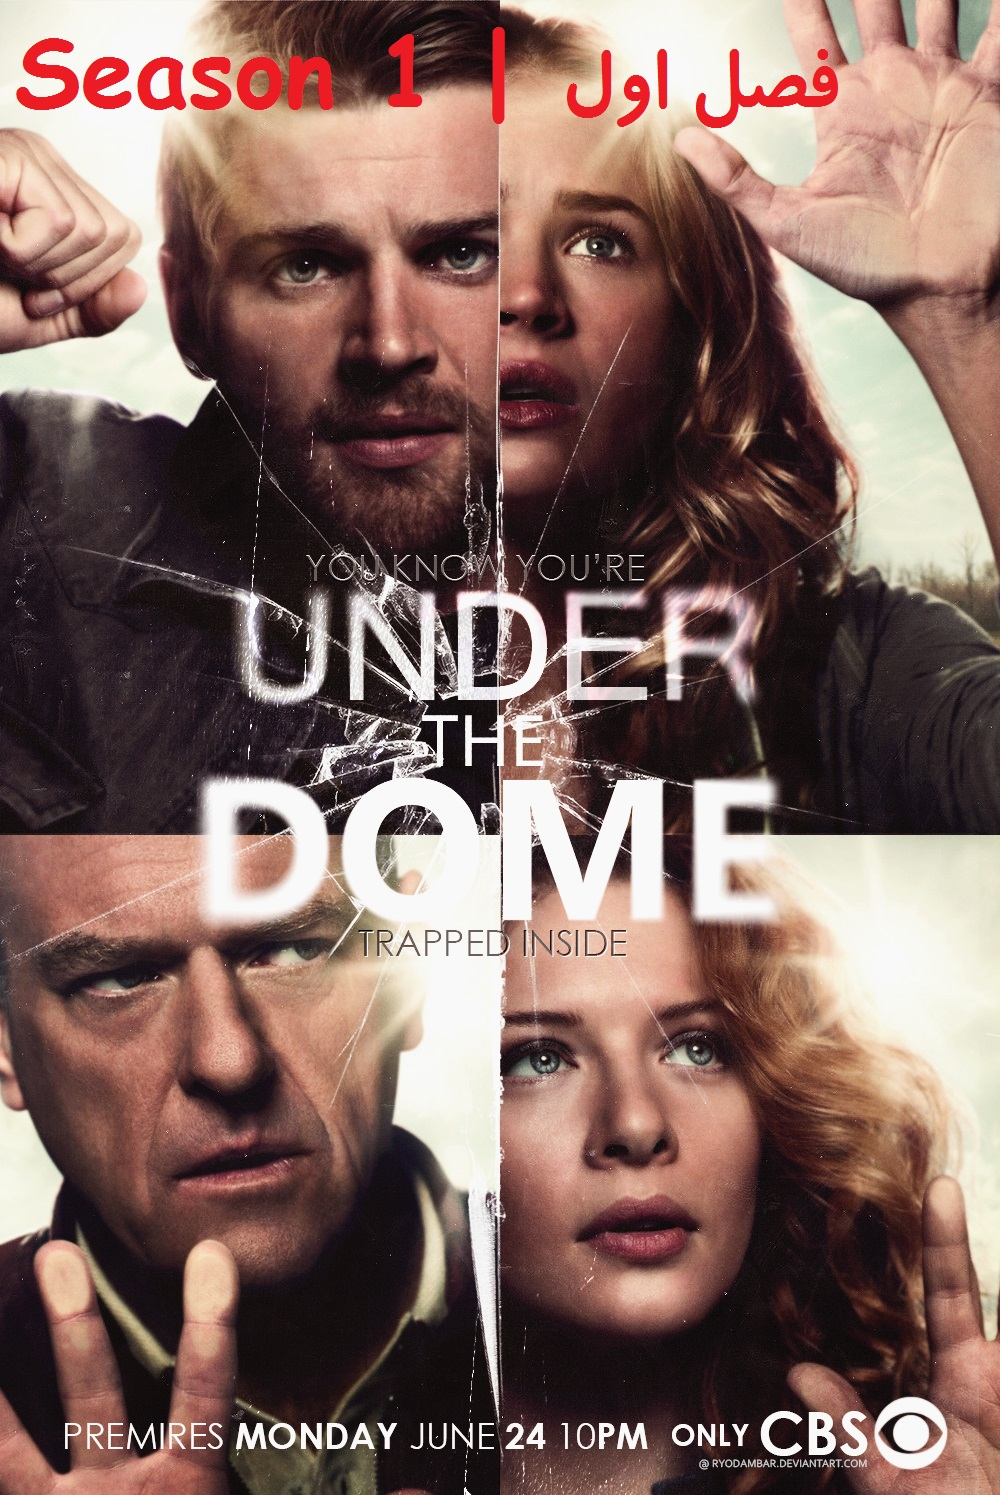 http://s5.picofile.com/file/8173114218/Under_The_Dome_S01.jpg